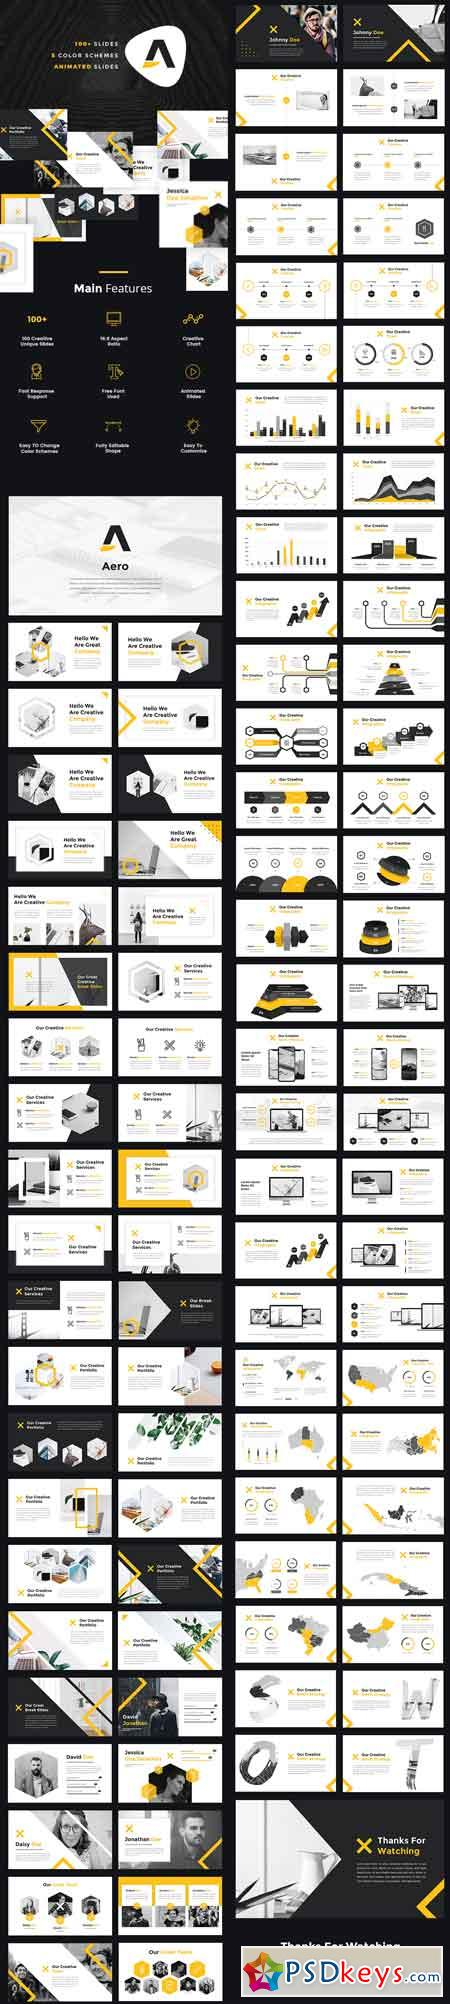 Aero - Pitch Deck PowerPoint Template 22386603